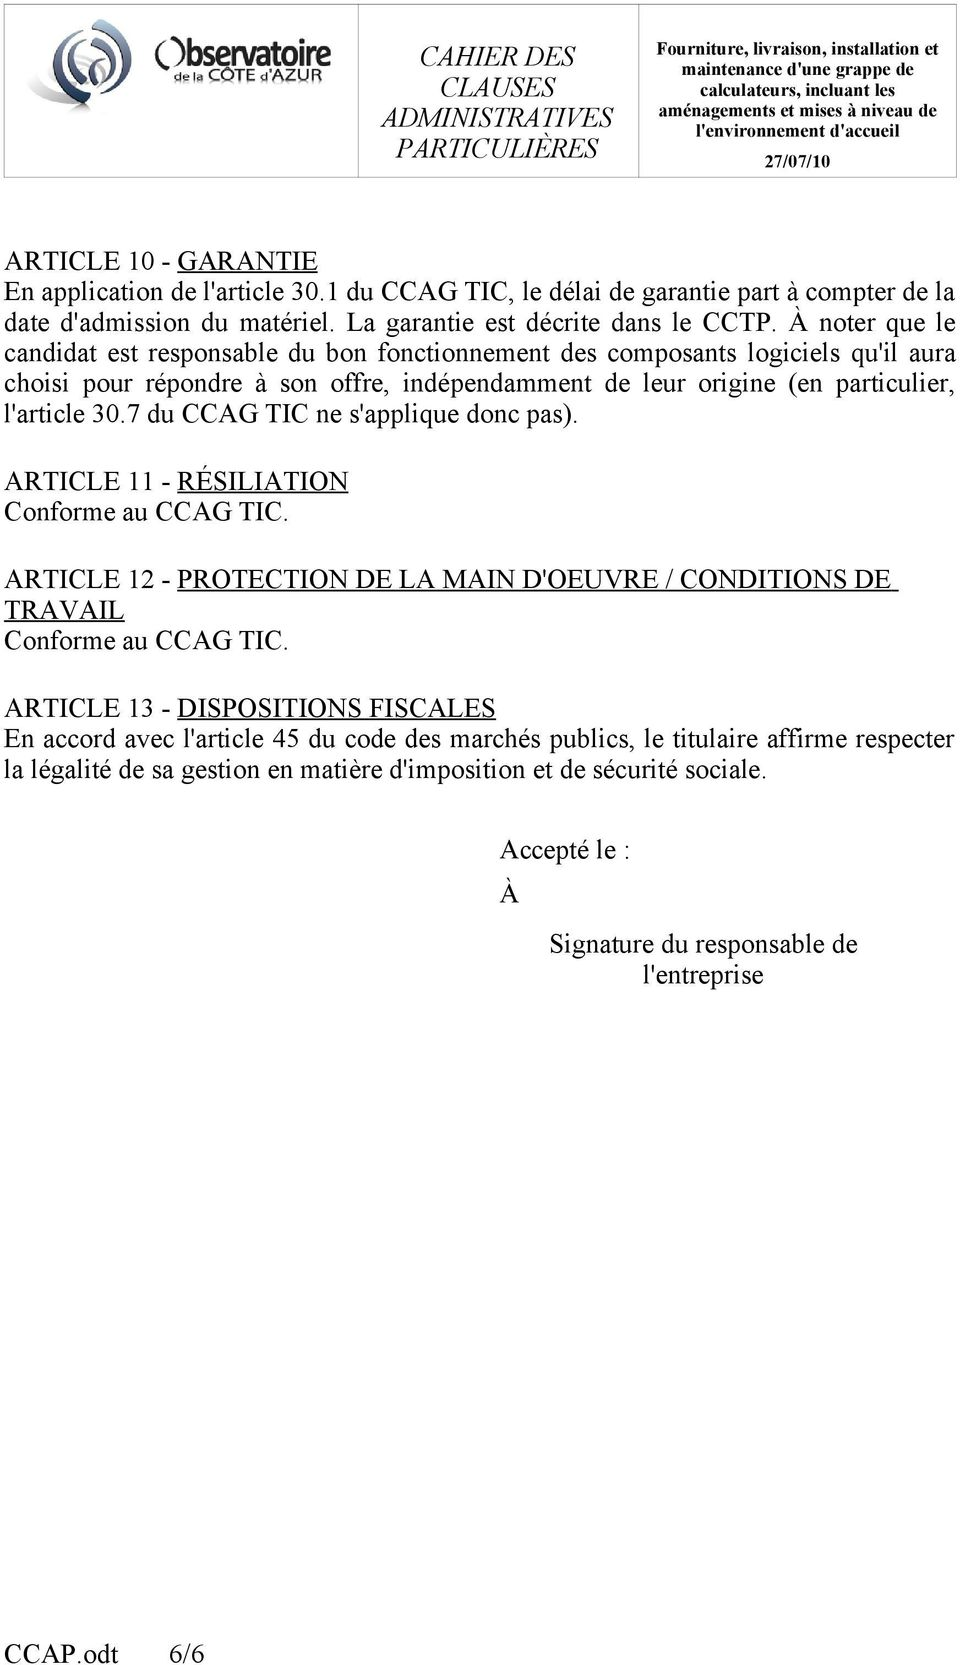 7 du CCAG TIC ne s'applique donc pas). ARTICLE 11 - RÉSILIATION Conforme au CCAG TIC. ARTICLE 12 - PROTECTION DE LA MAIN D'OEUVRE / CONDITIONS DE TRAVAIL Conforme au CCAG TIC.